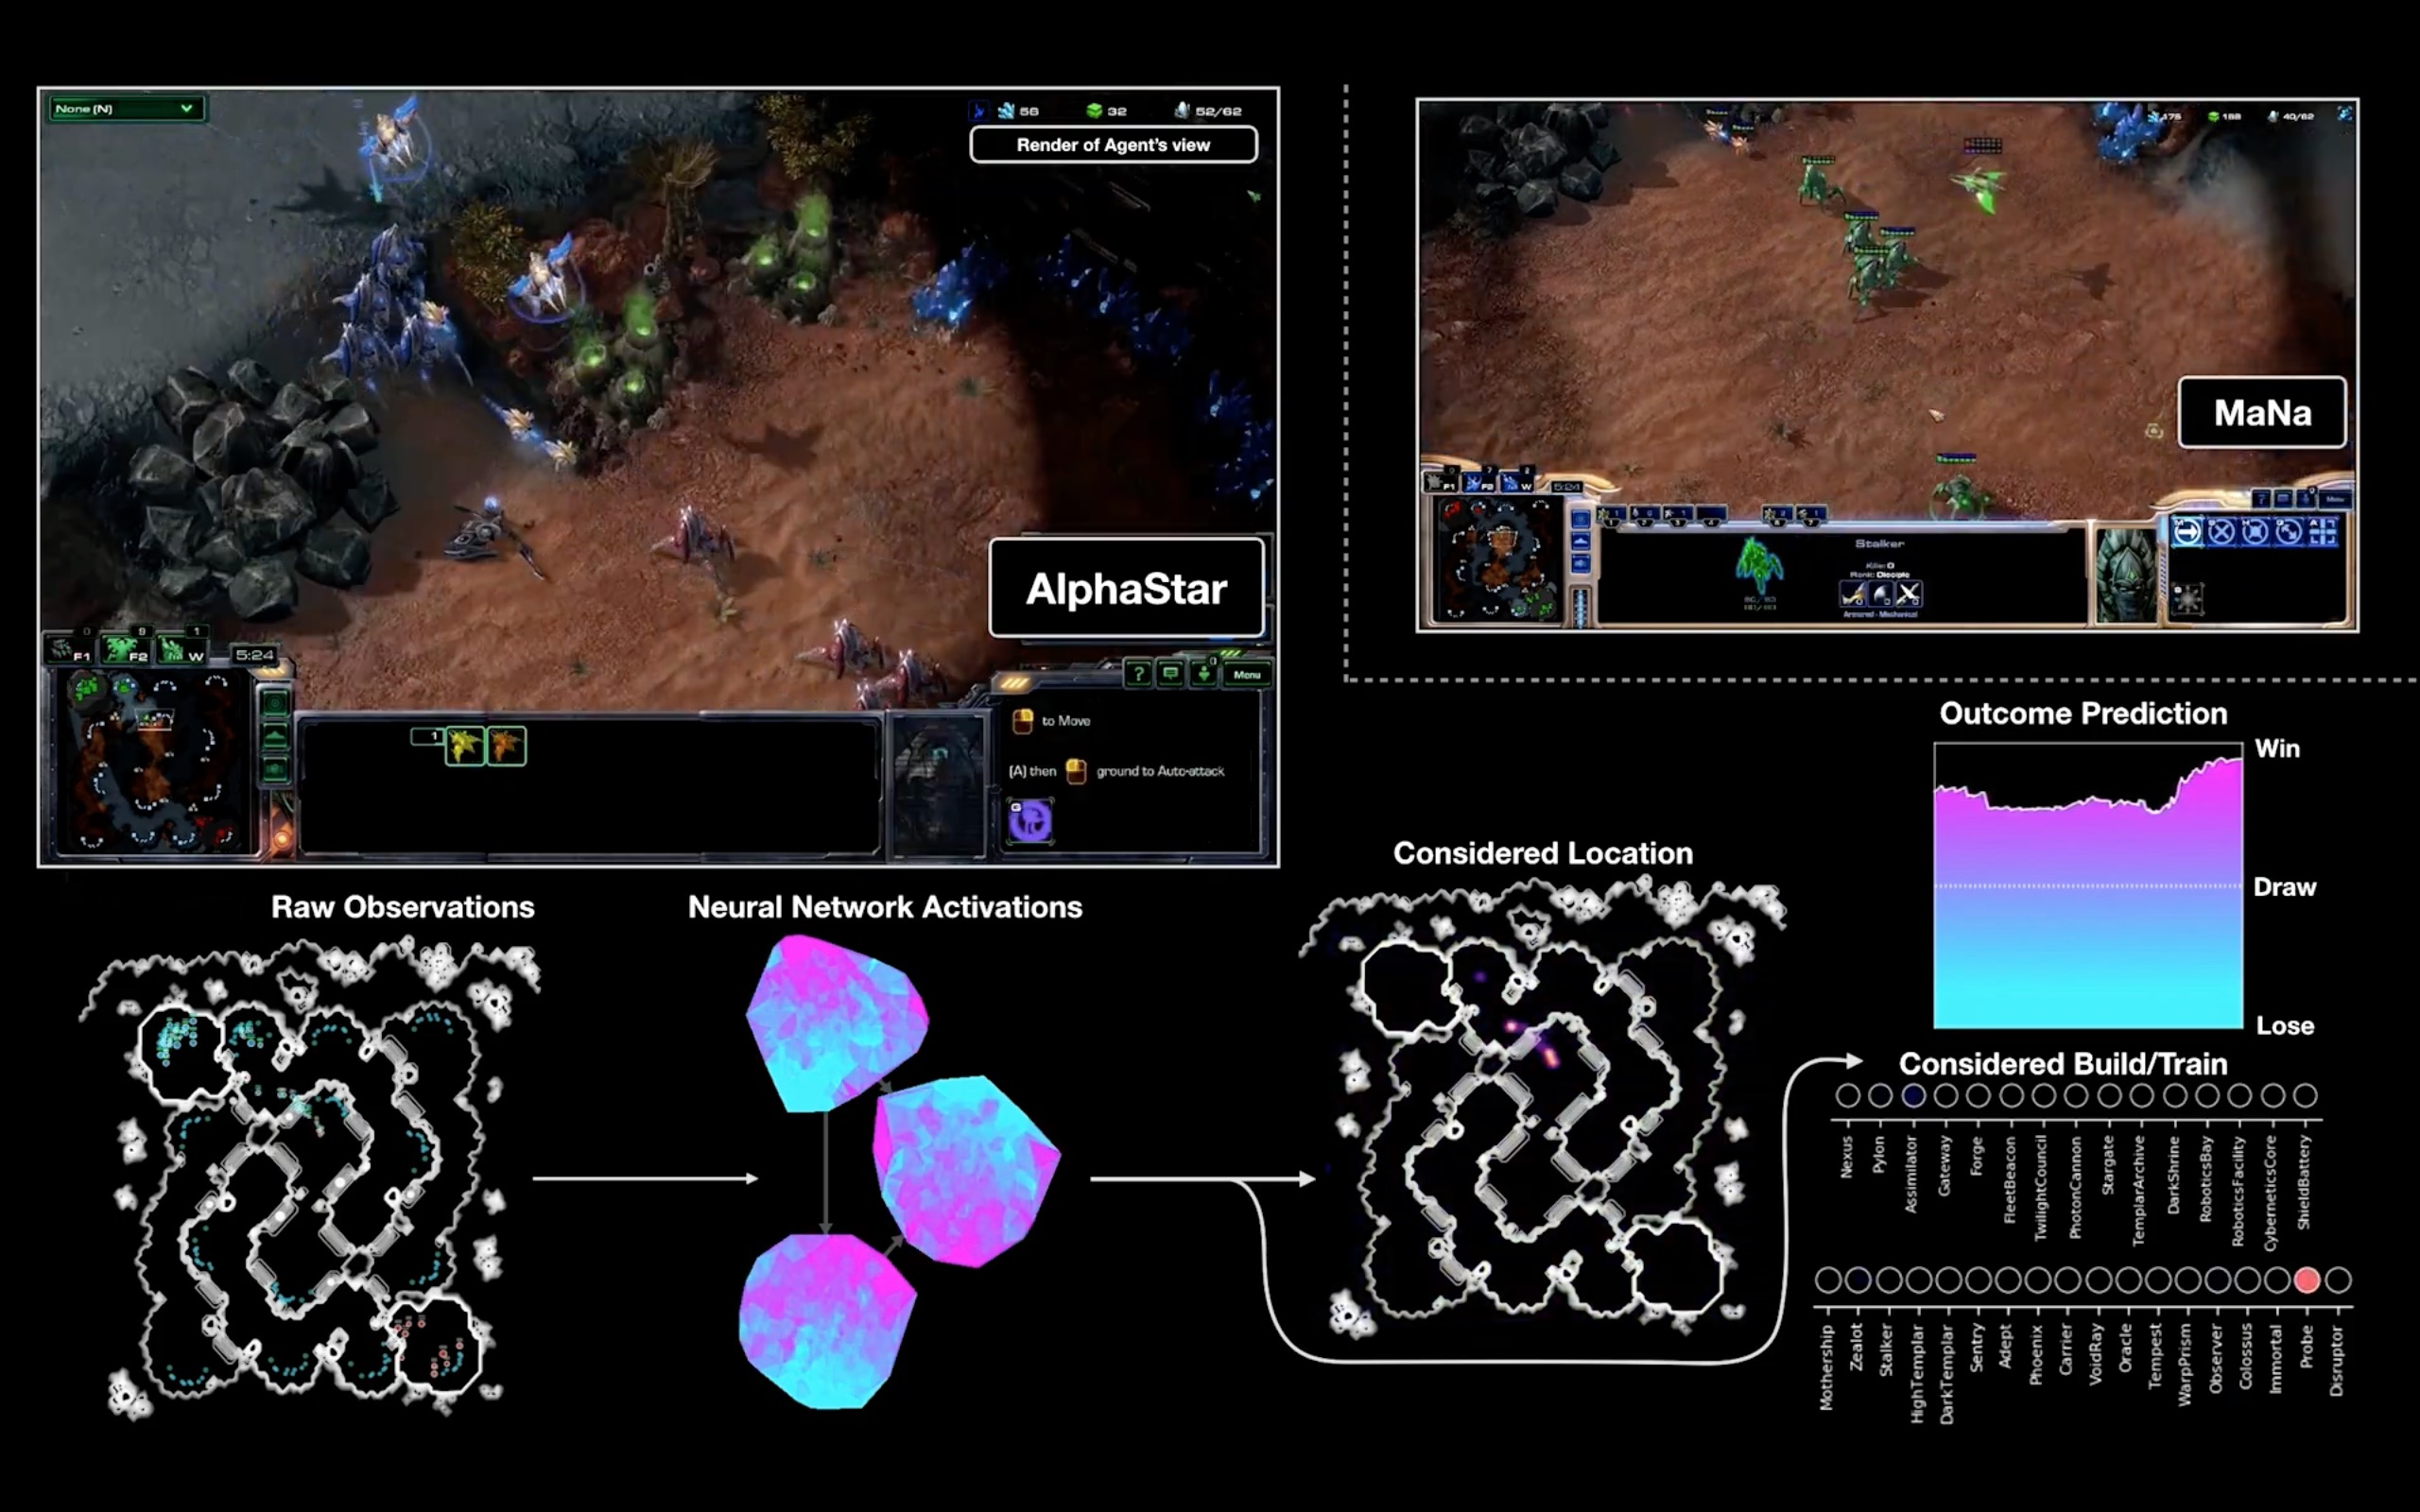 DeepMind AlphaStar AI wins 10-1 against StarCraft II gamers - 9to5Google